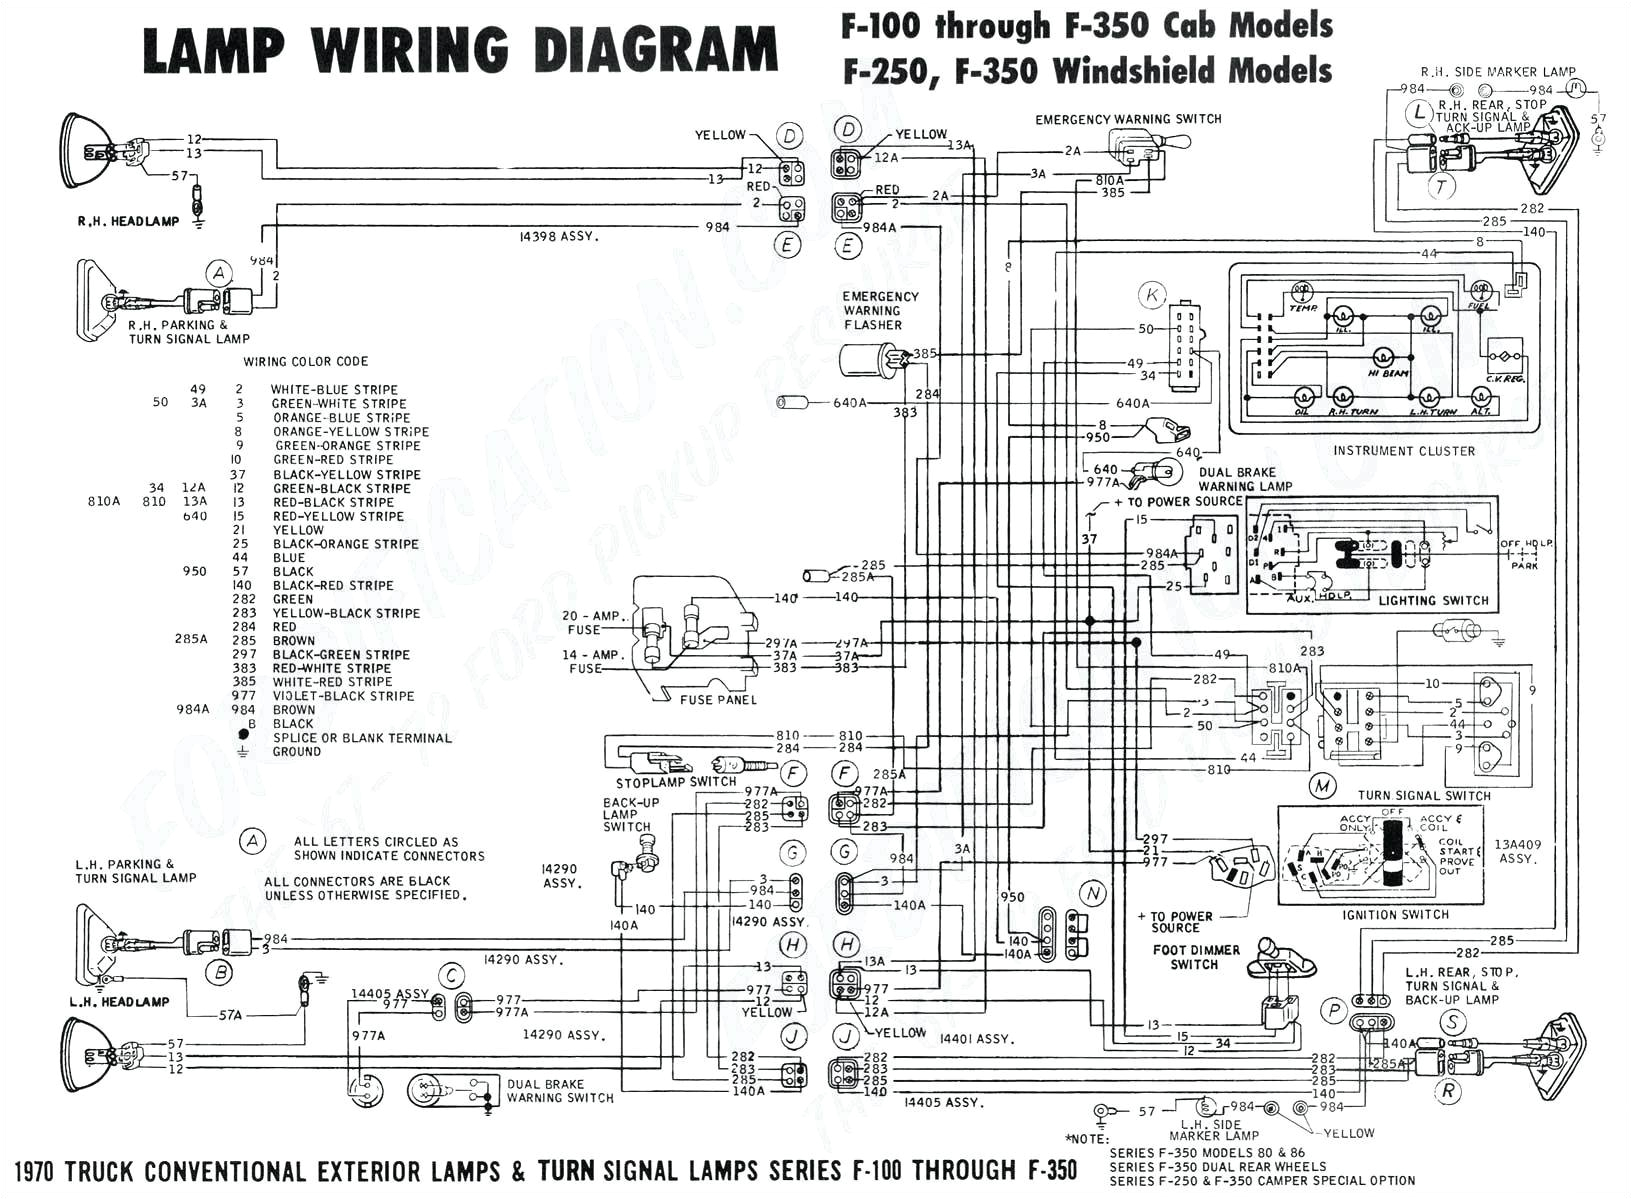 2009 Honda Civic Wiring Diagram 2009 Civic Wiring Diagram Wiring Diagram List